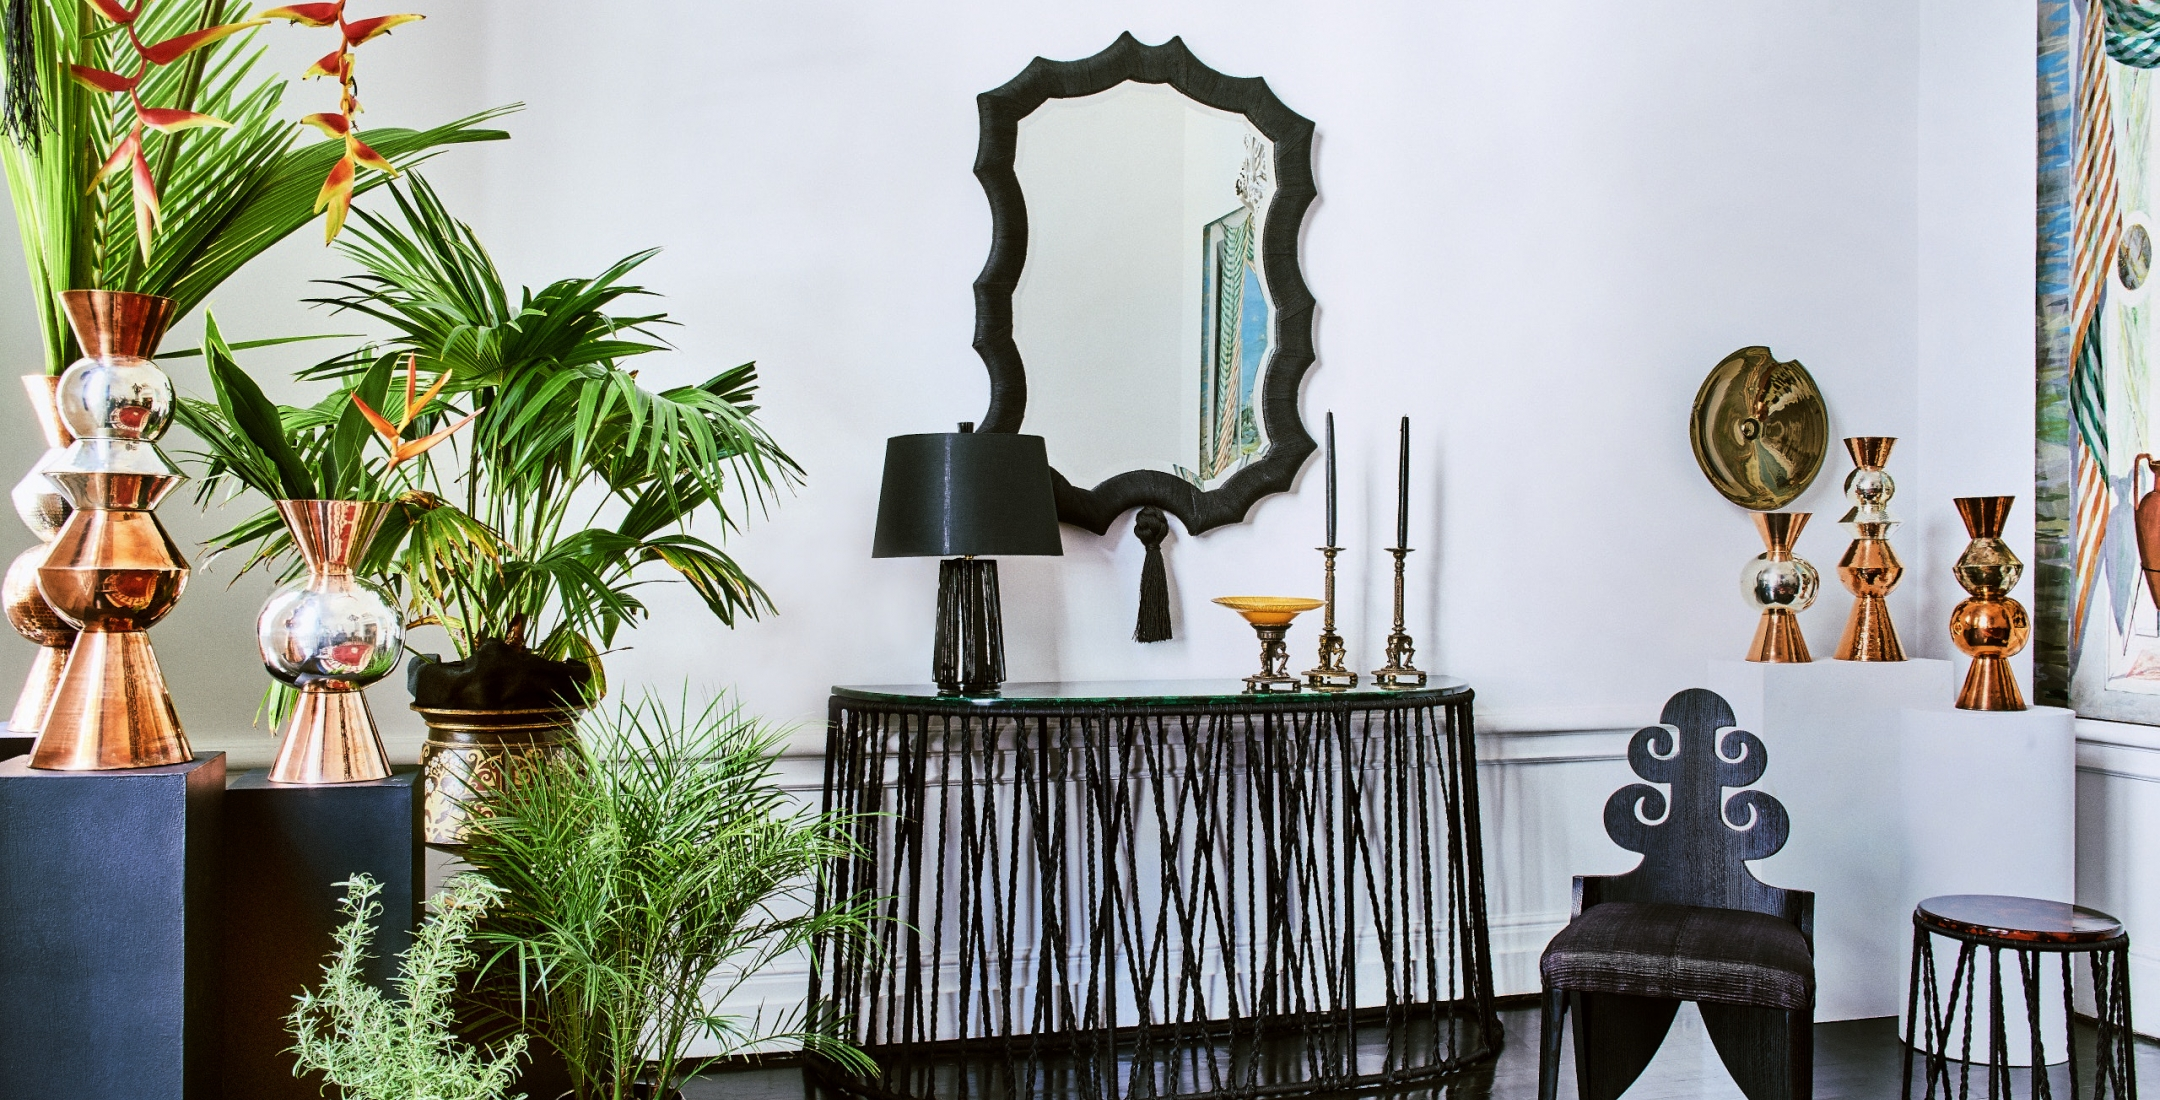 A vignette from Speaking in Tongues: Furniture and Accessories by Laura Kirar